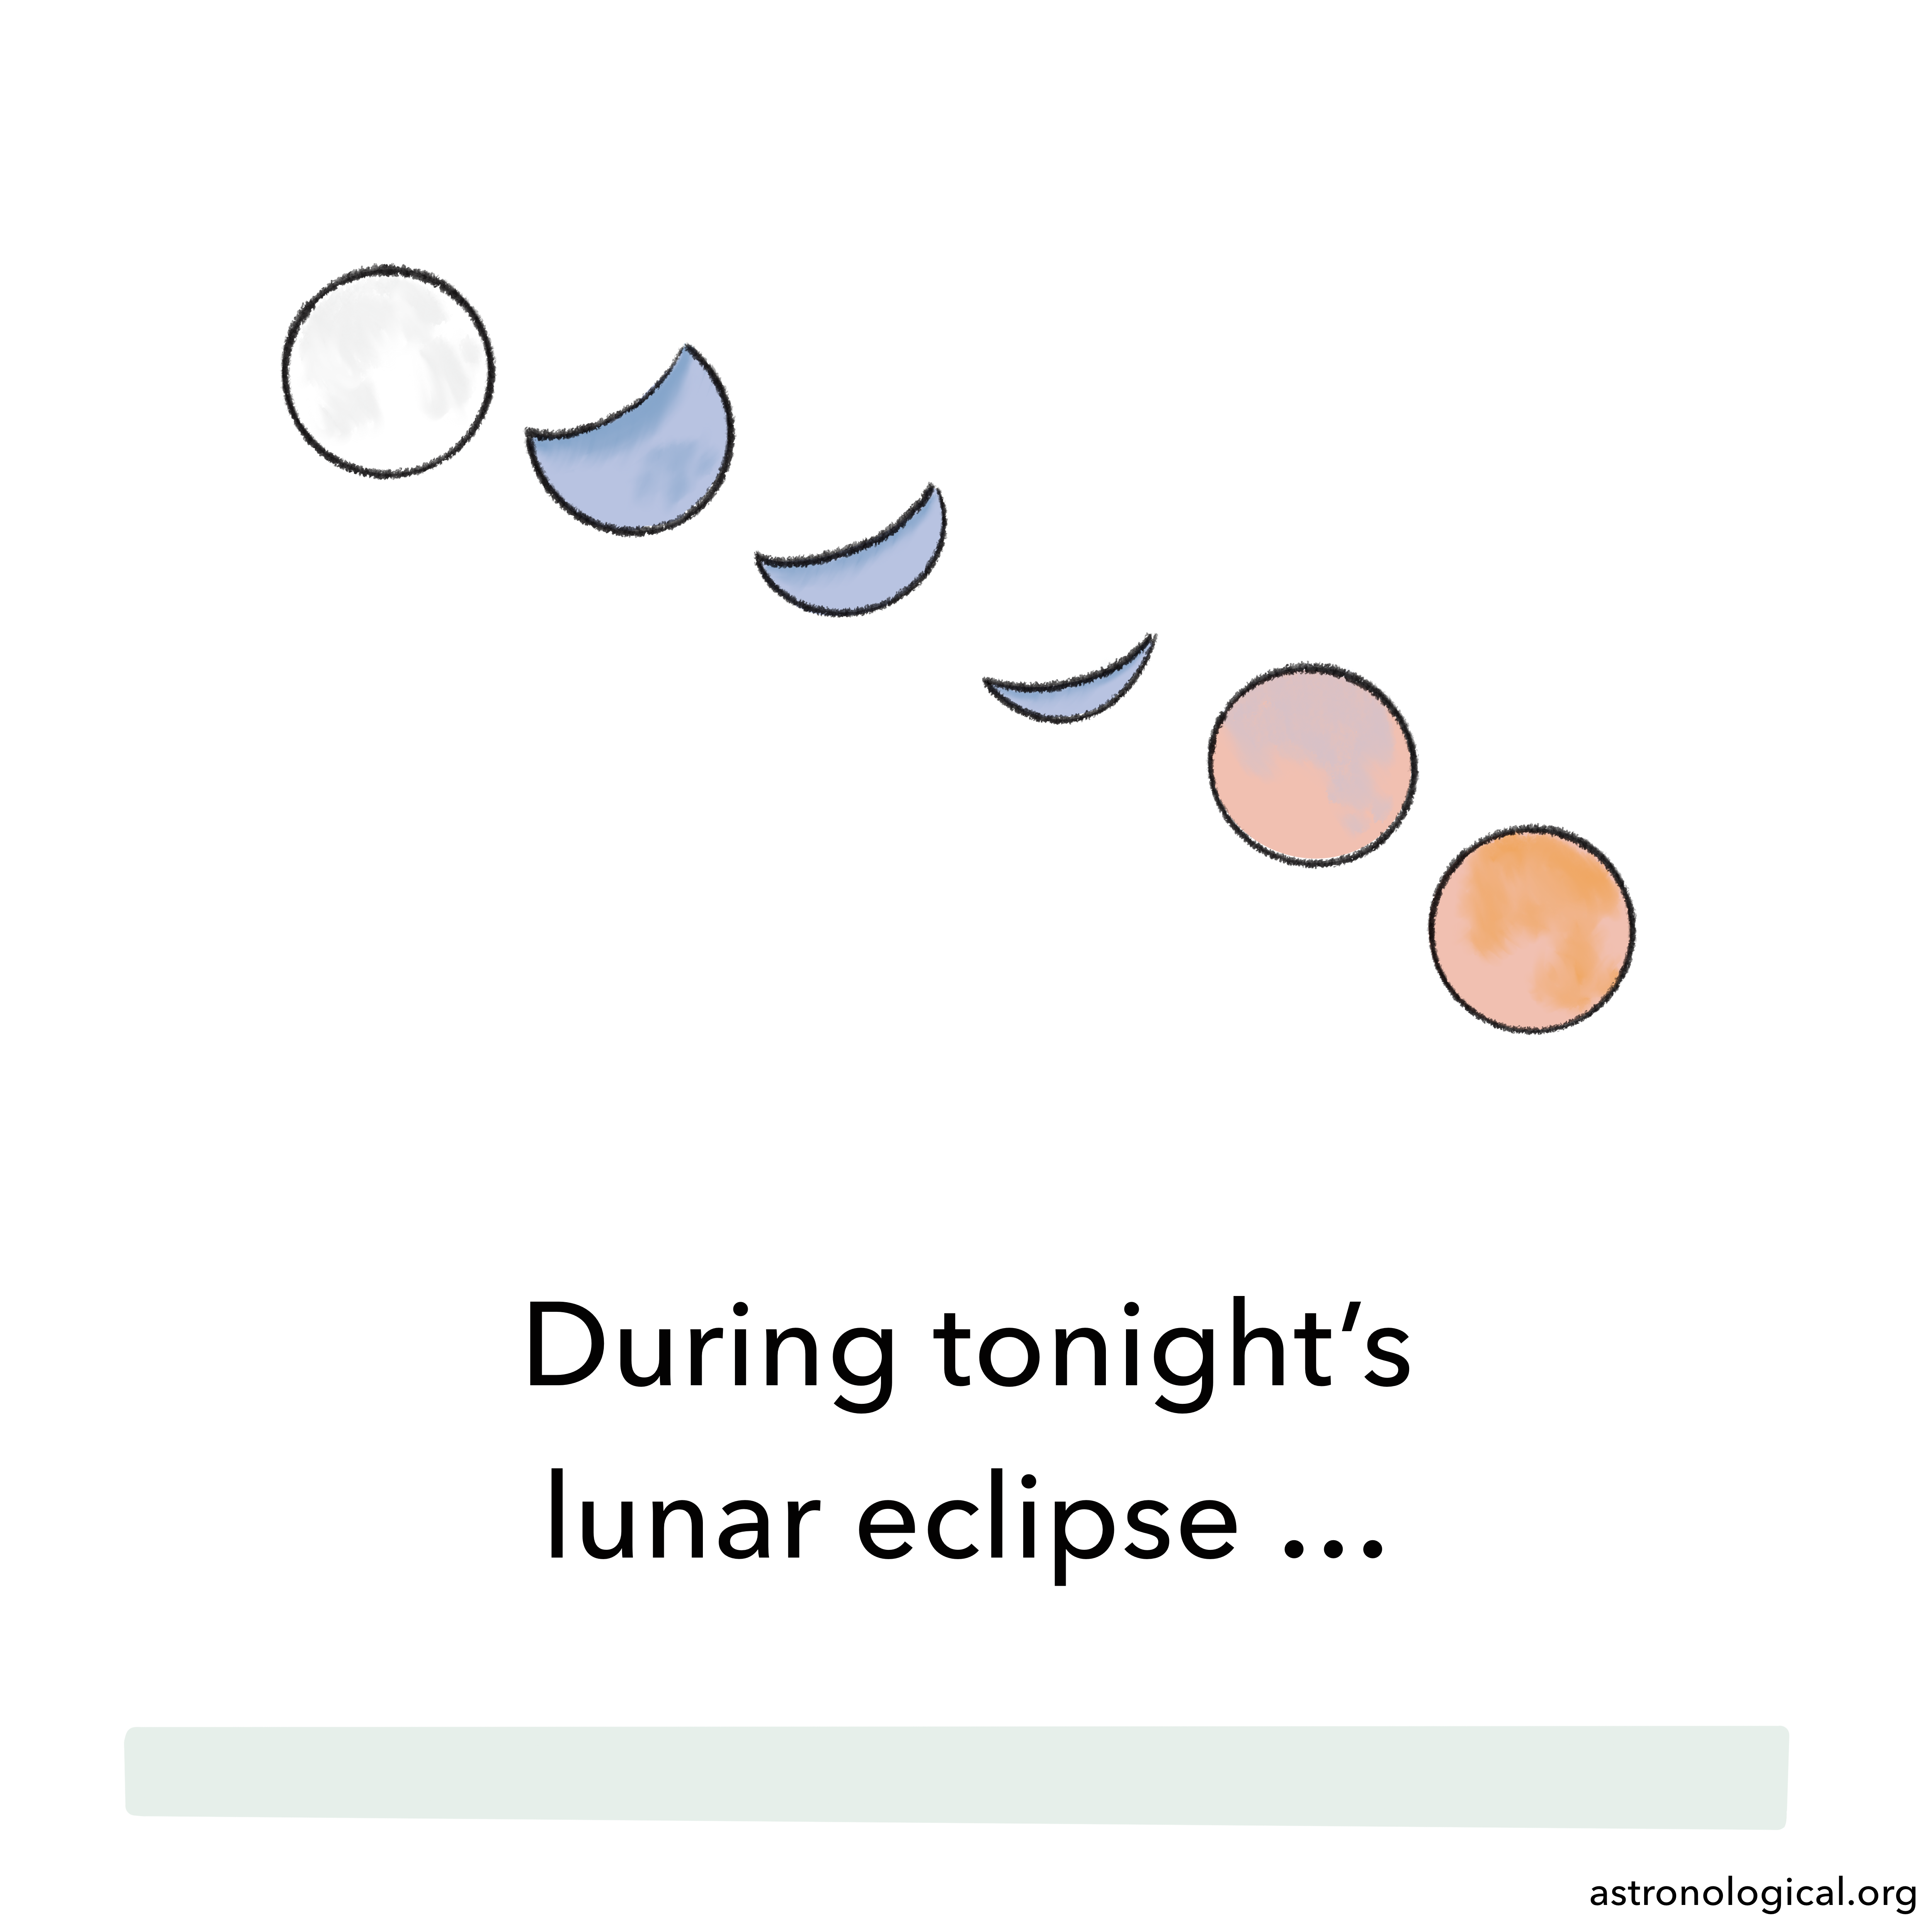 A cartoon image of different moon phases during an eclipse is shown. The text reads: During tonight's lunar eclipse …